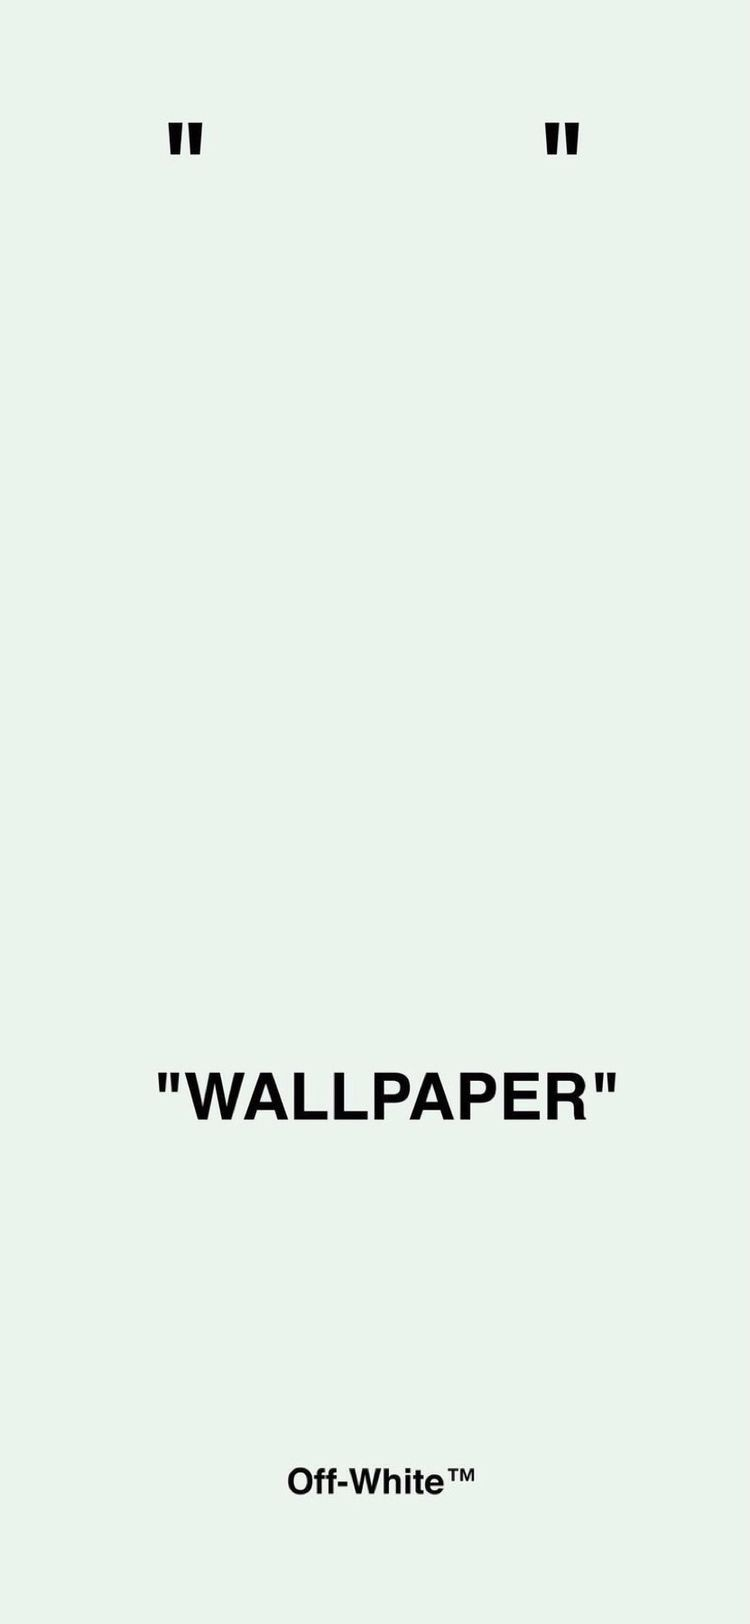 Iphone 6 S Offwhite Wallpaper Ythangonzales Hypebeast Wallpaper Wallpaper Off White Apple Wallpaper